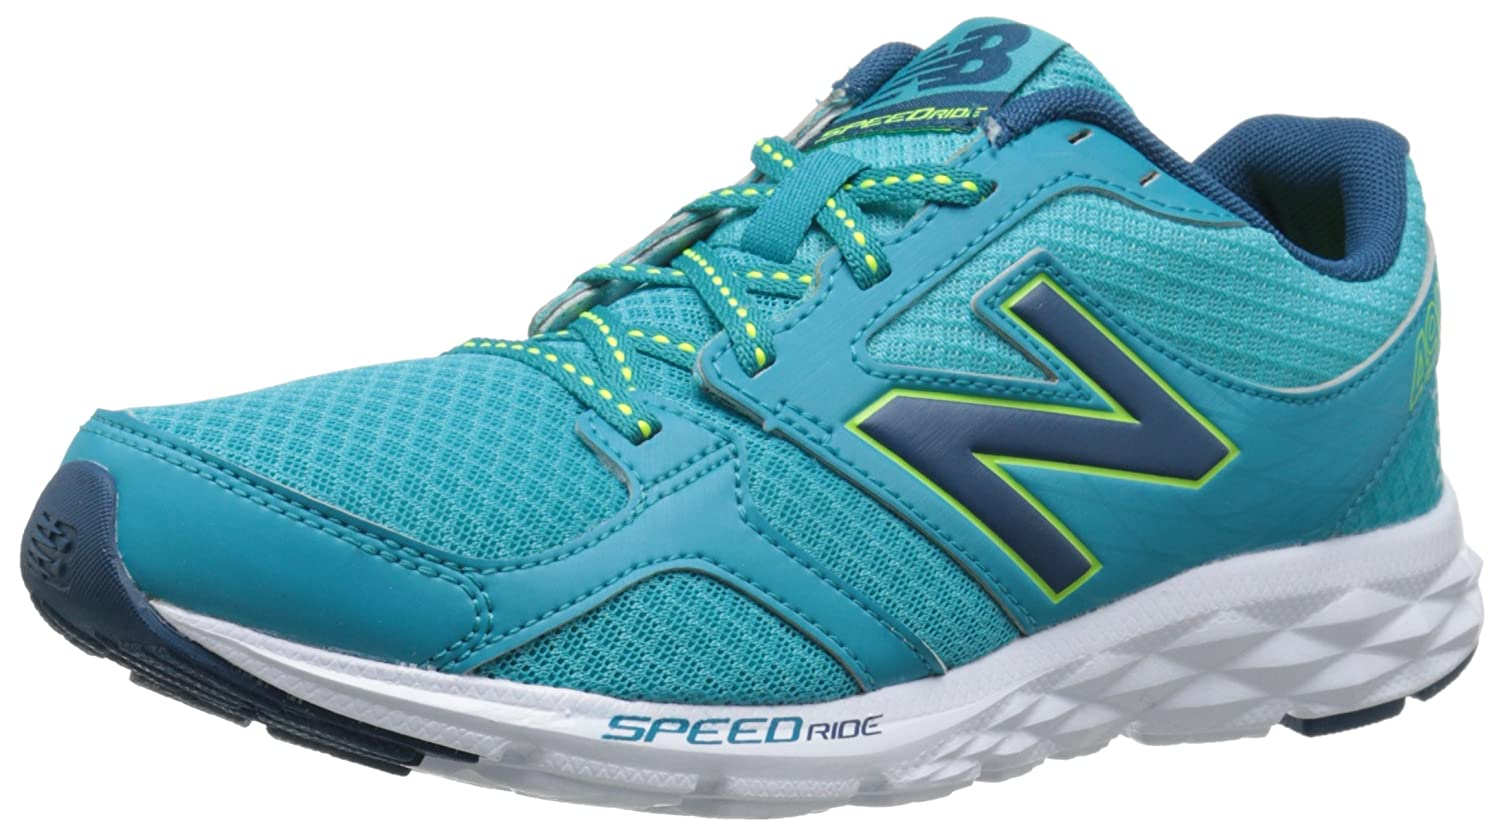 New Balance Speed Ride 490 V3 Running Sneakers Women's Size